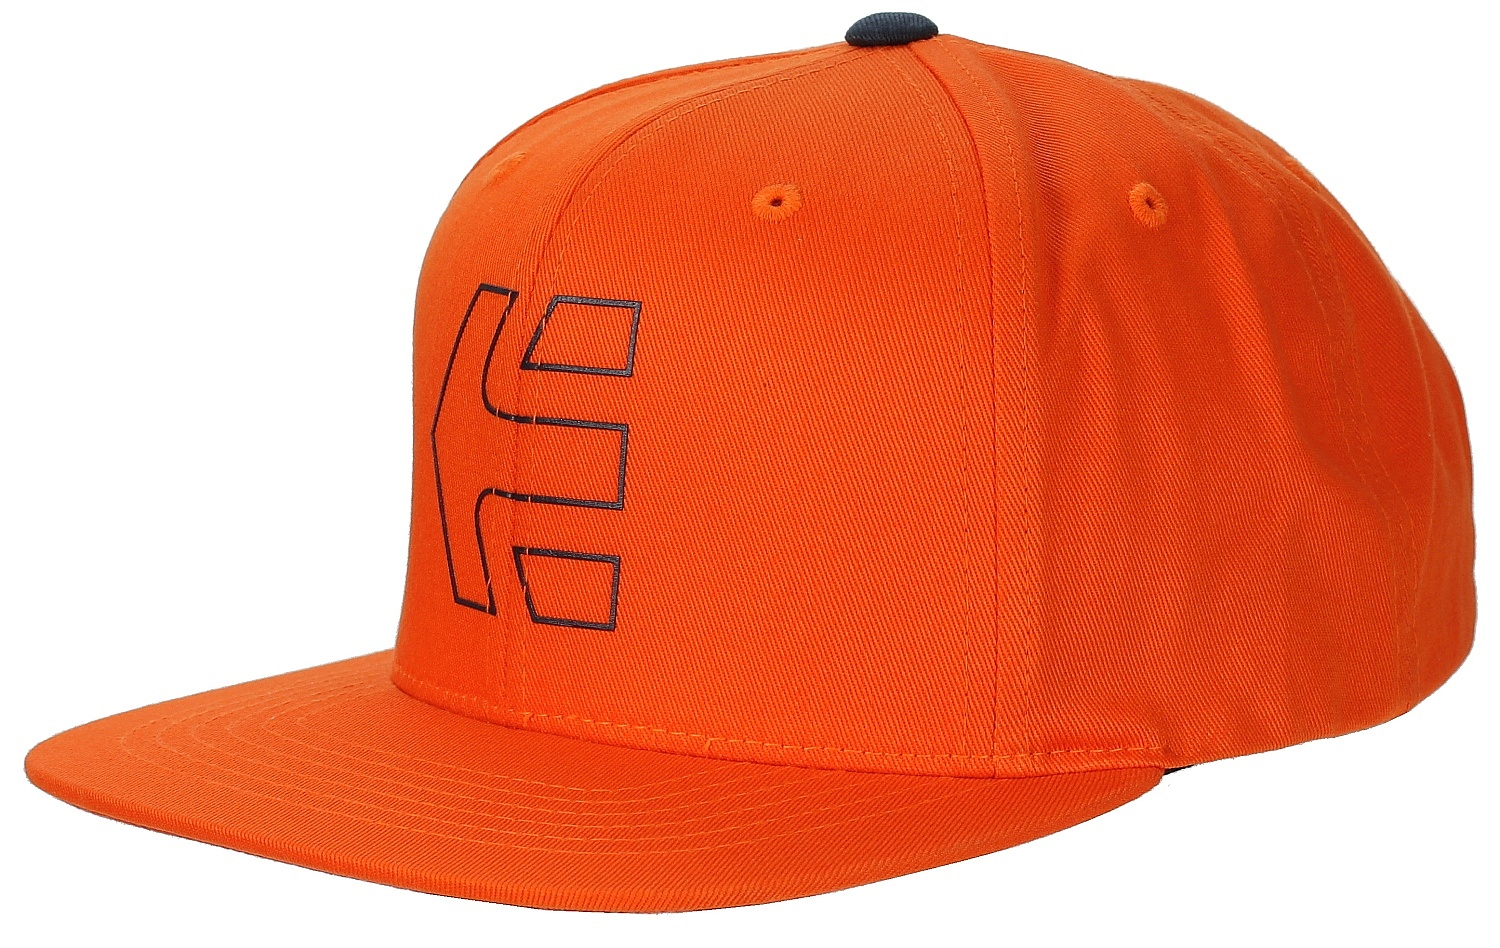 Photo Of Orange >> kšiltovka Etnies Icon Outline Snapback - Orange - Snowboard shop, skateshop - blackcomb.cz